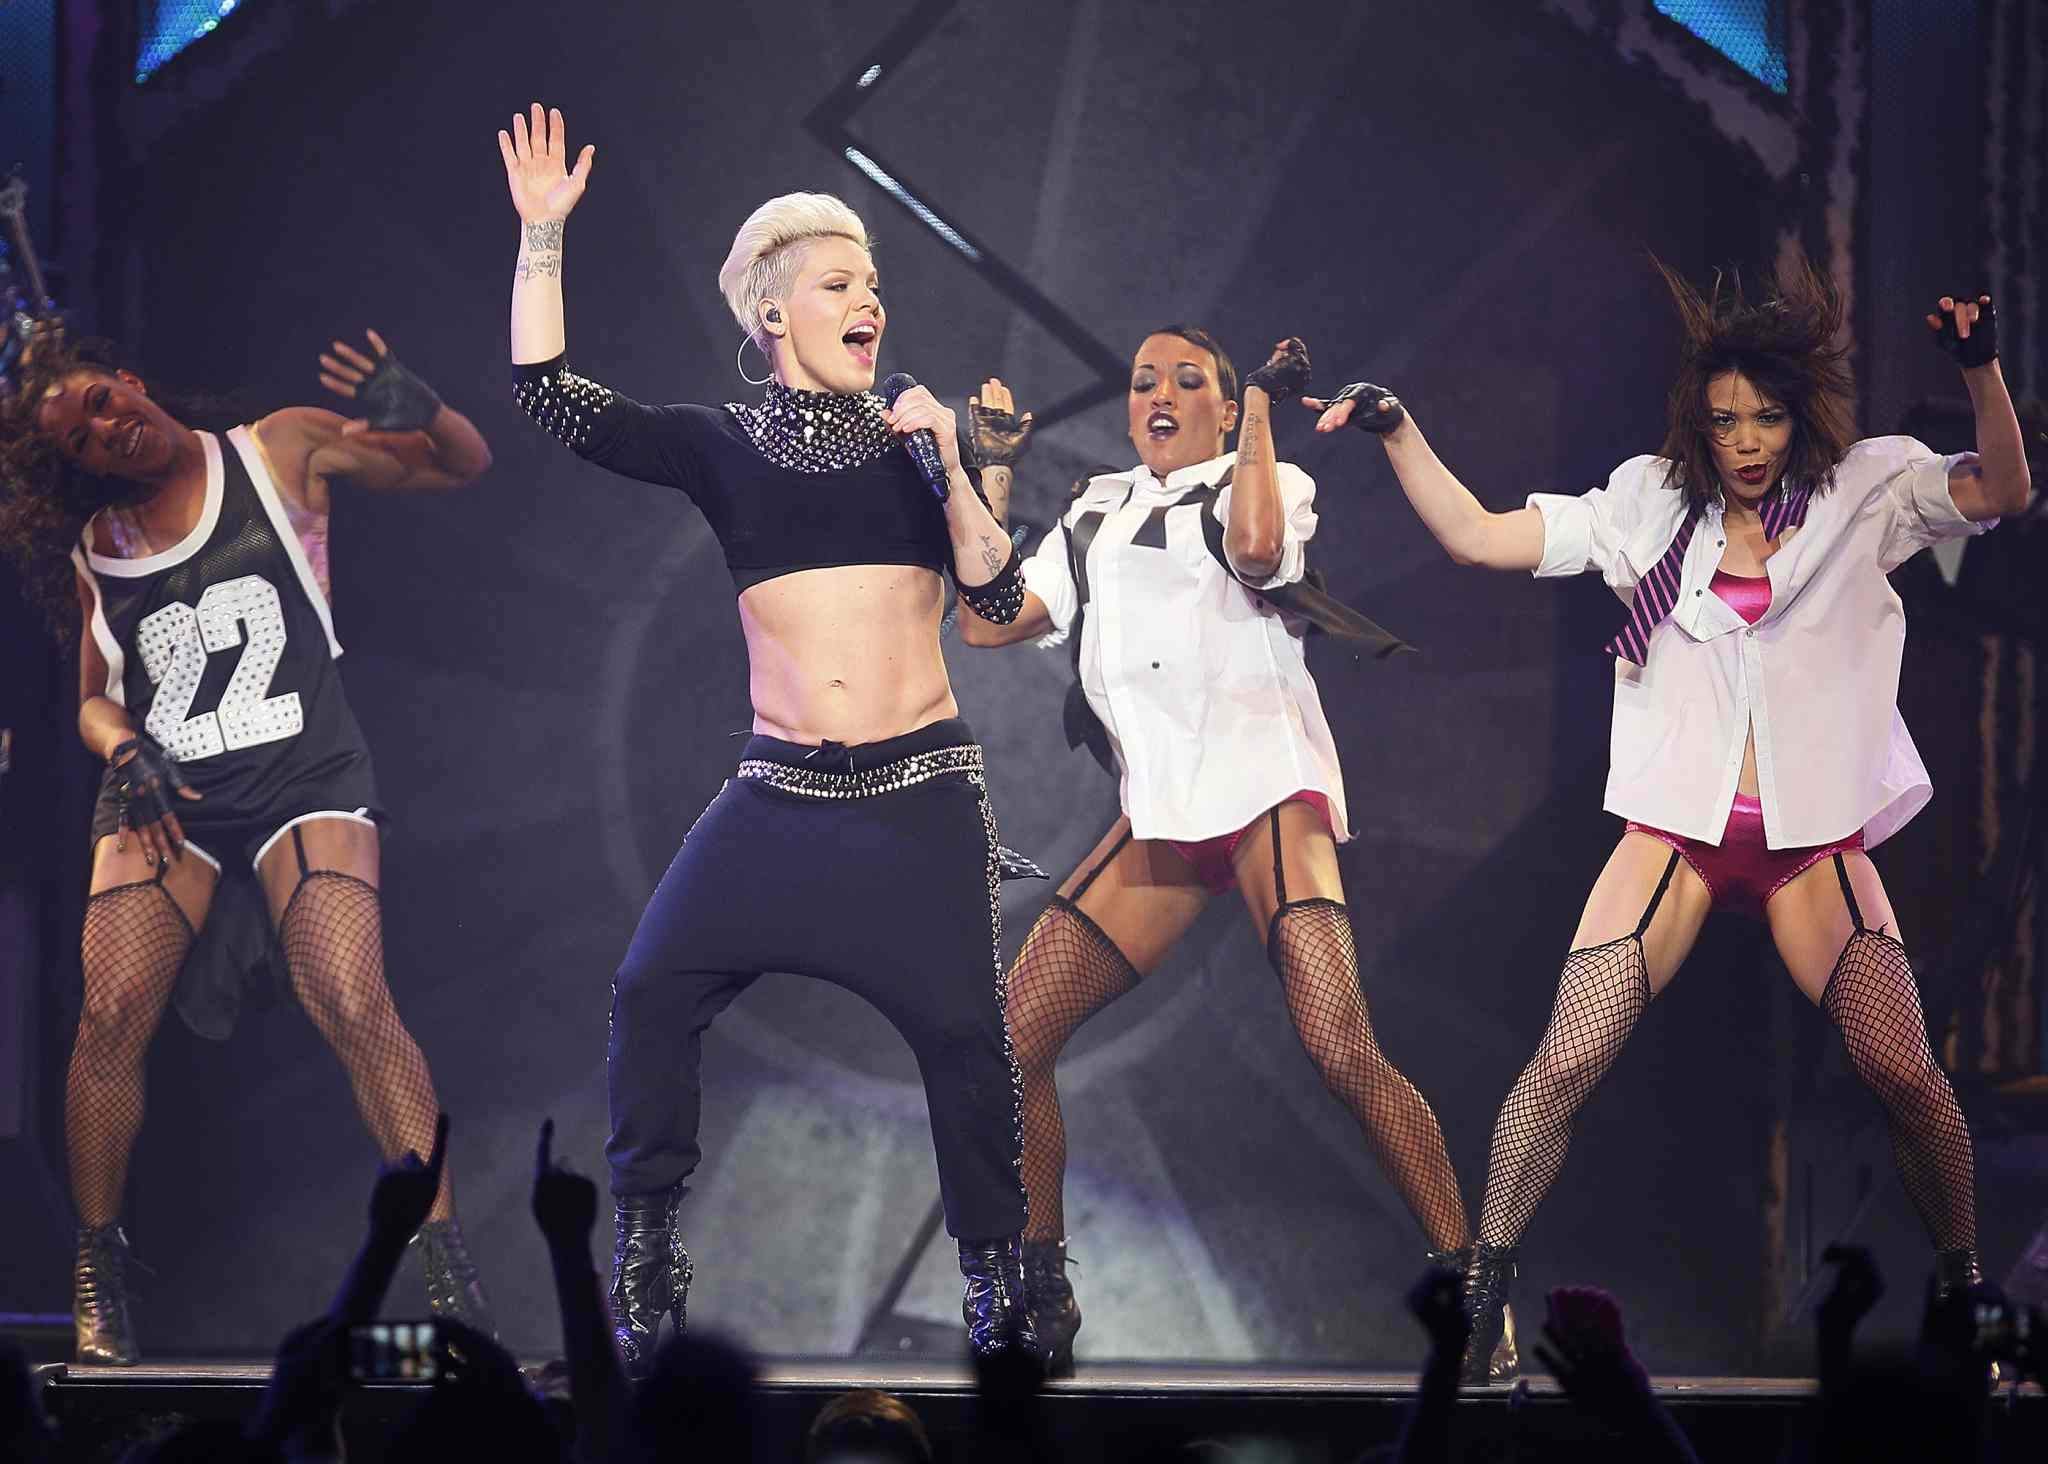 Pink's back-up dancers kept the energy alive throughout the superstar's sold-out MTS Centre show Tuesday.